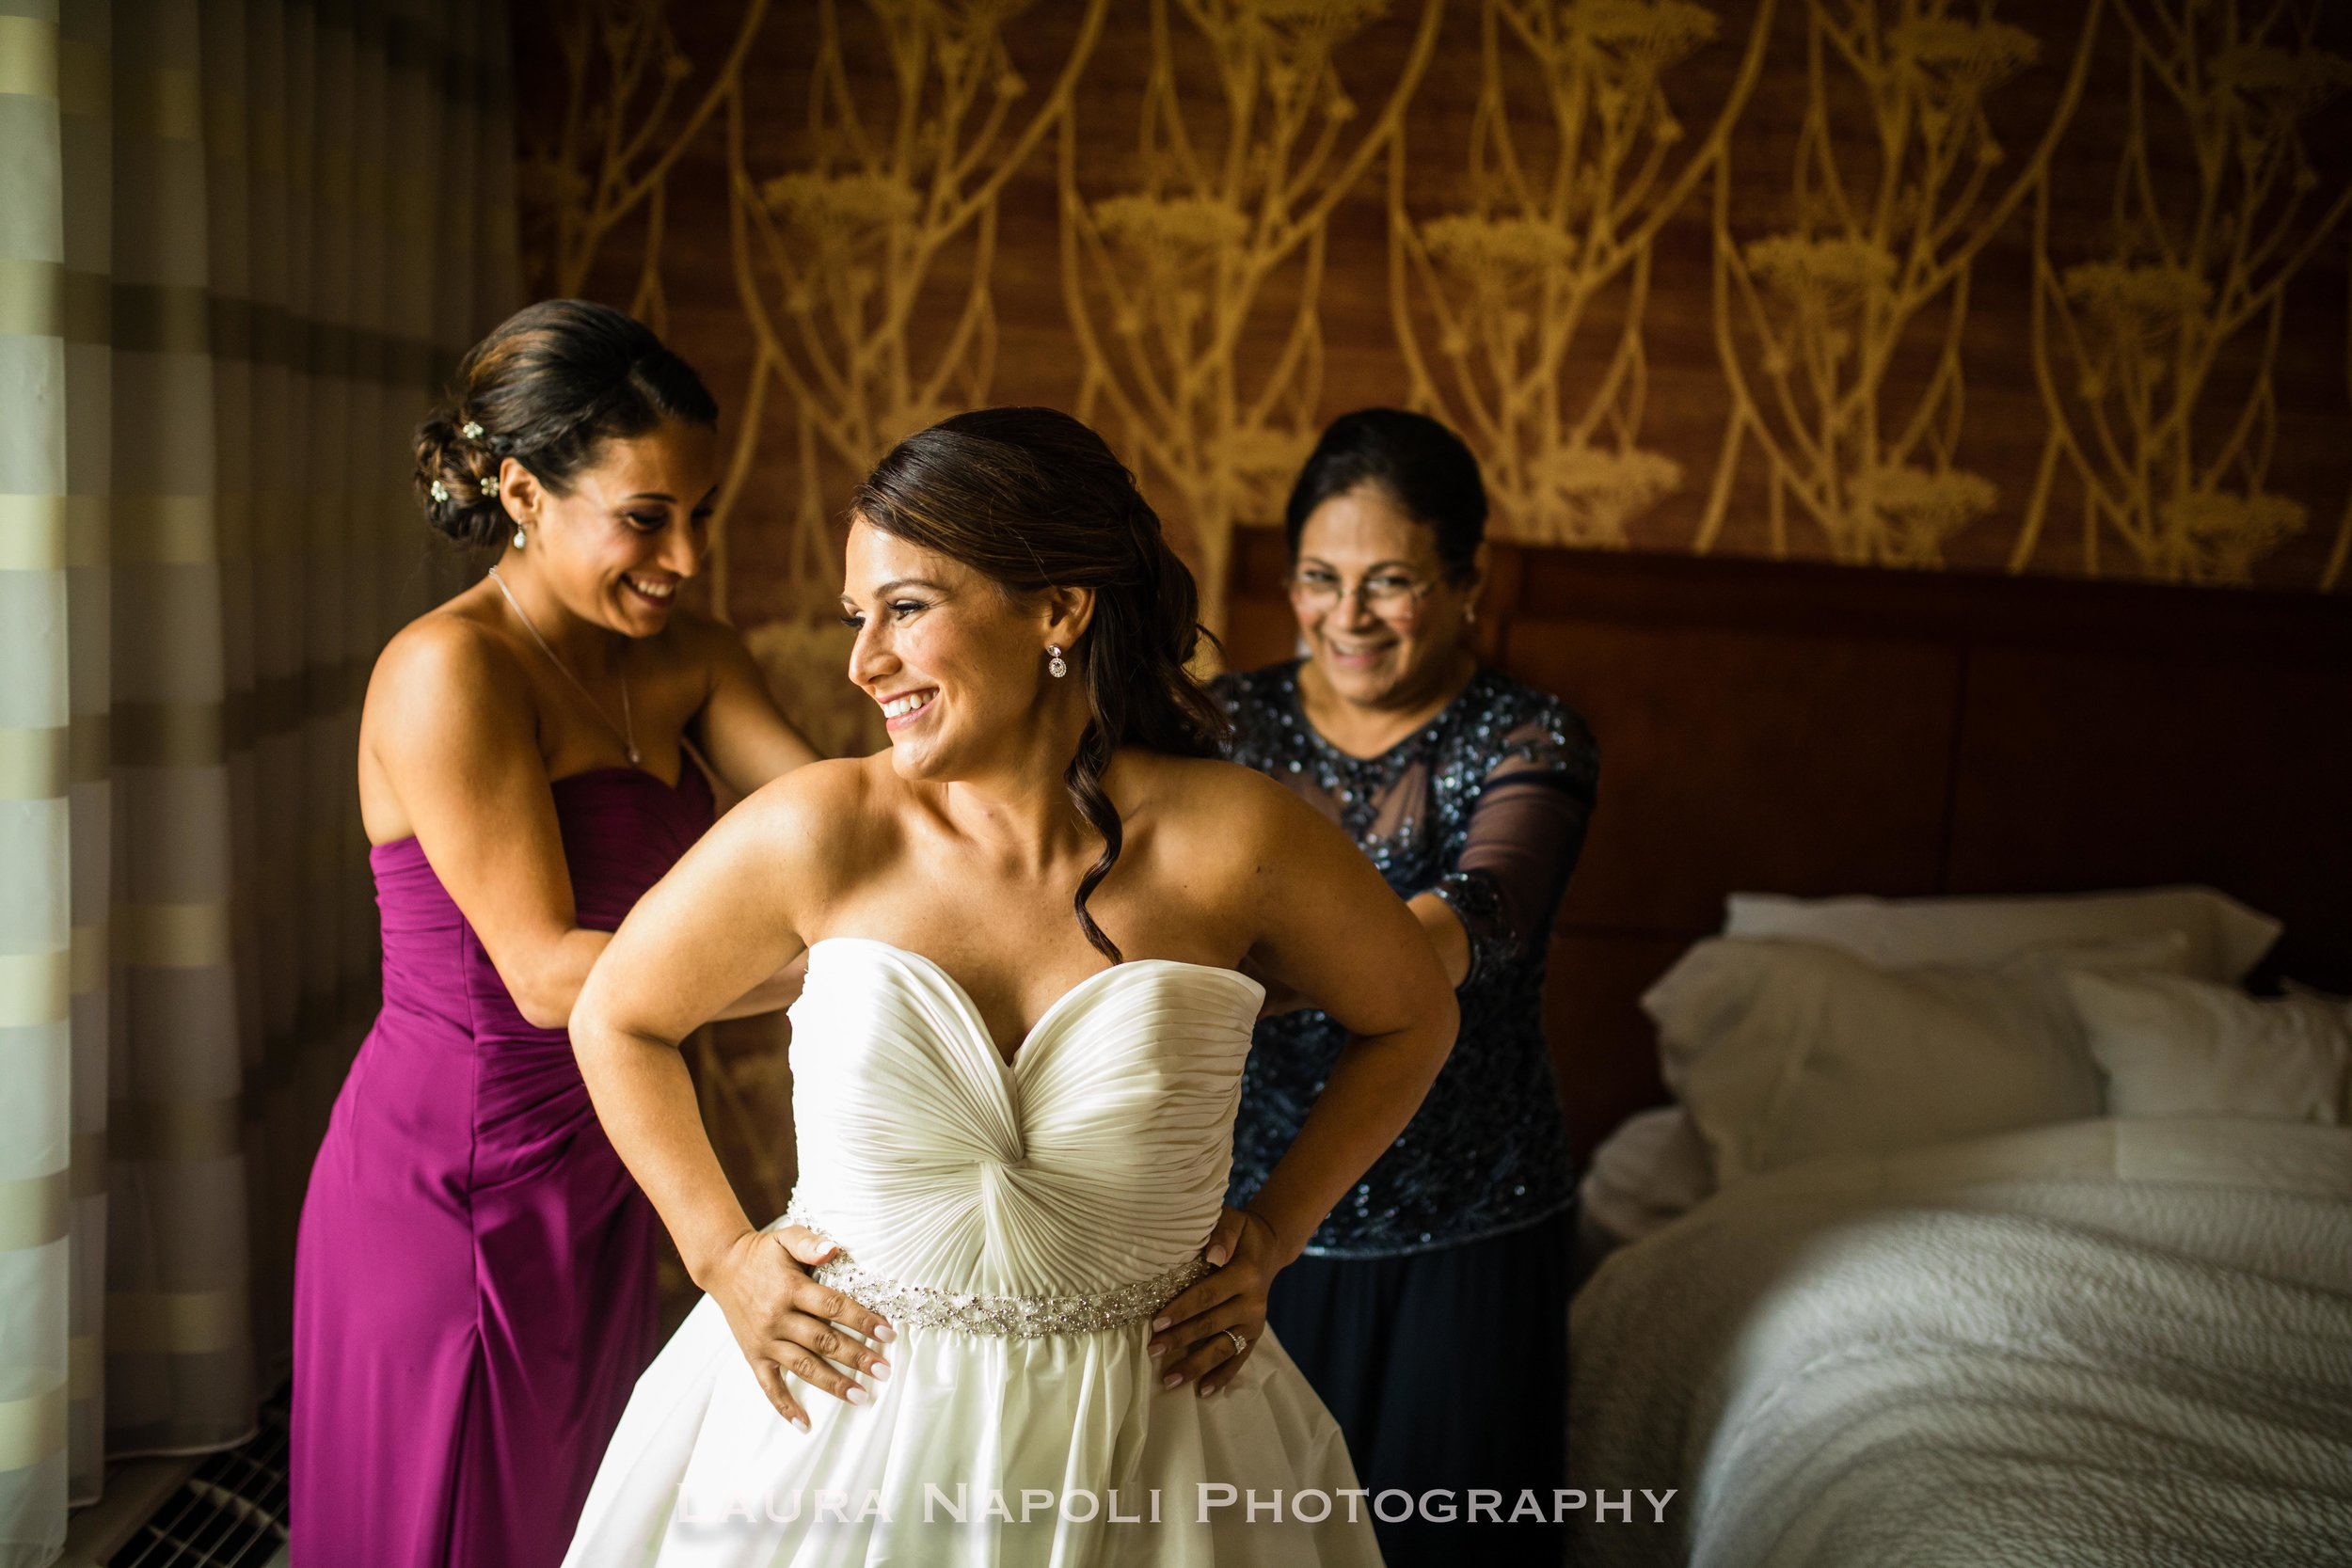 ScotlandRunWilliamstownNJWeddingvenue-7.jpg